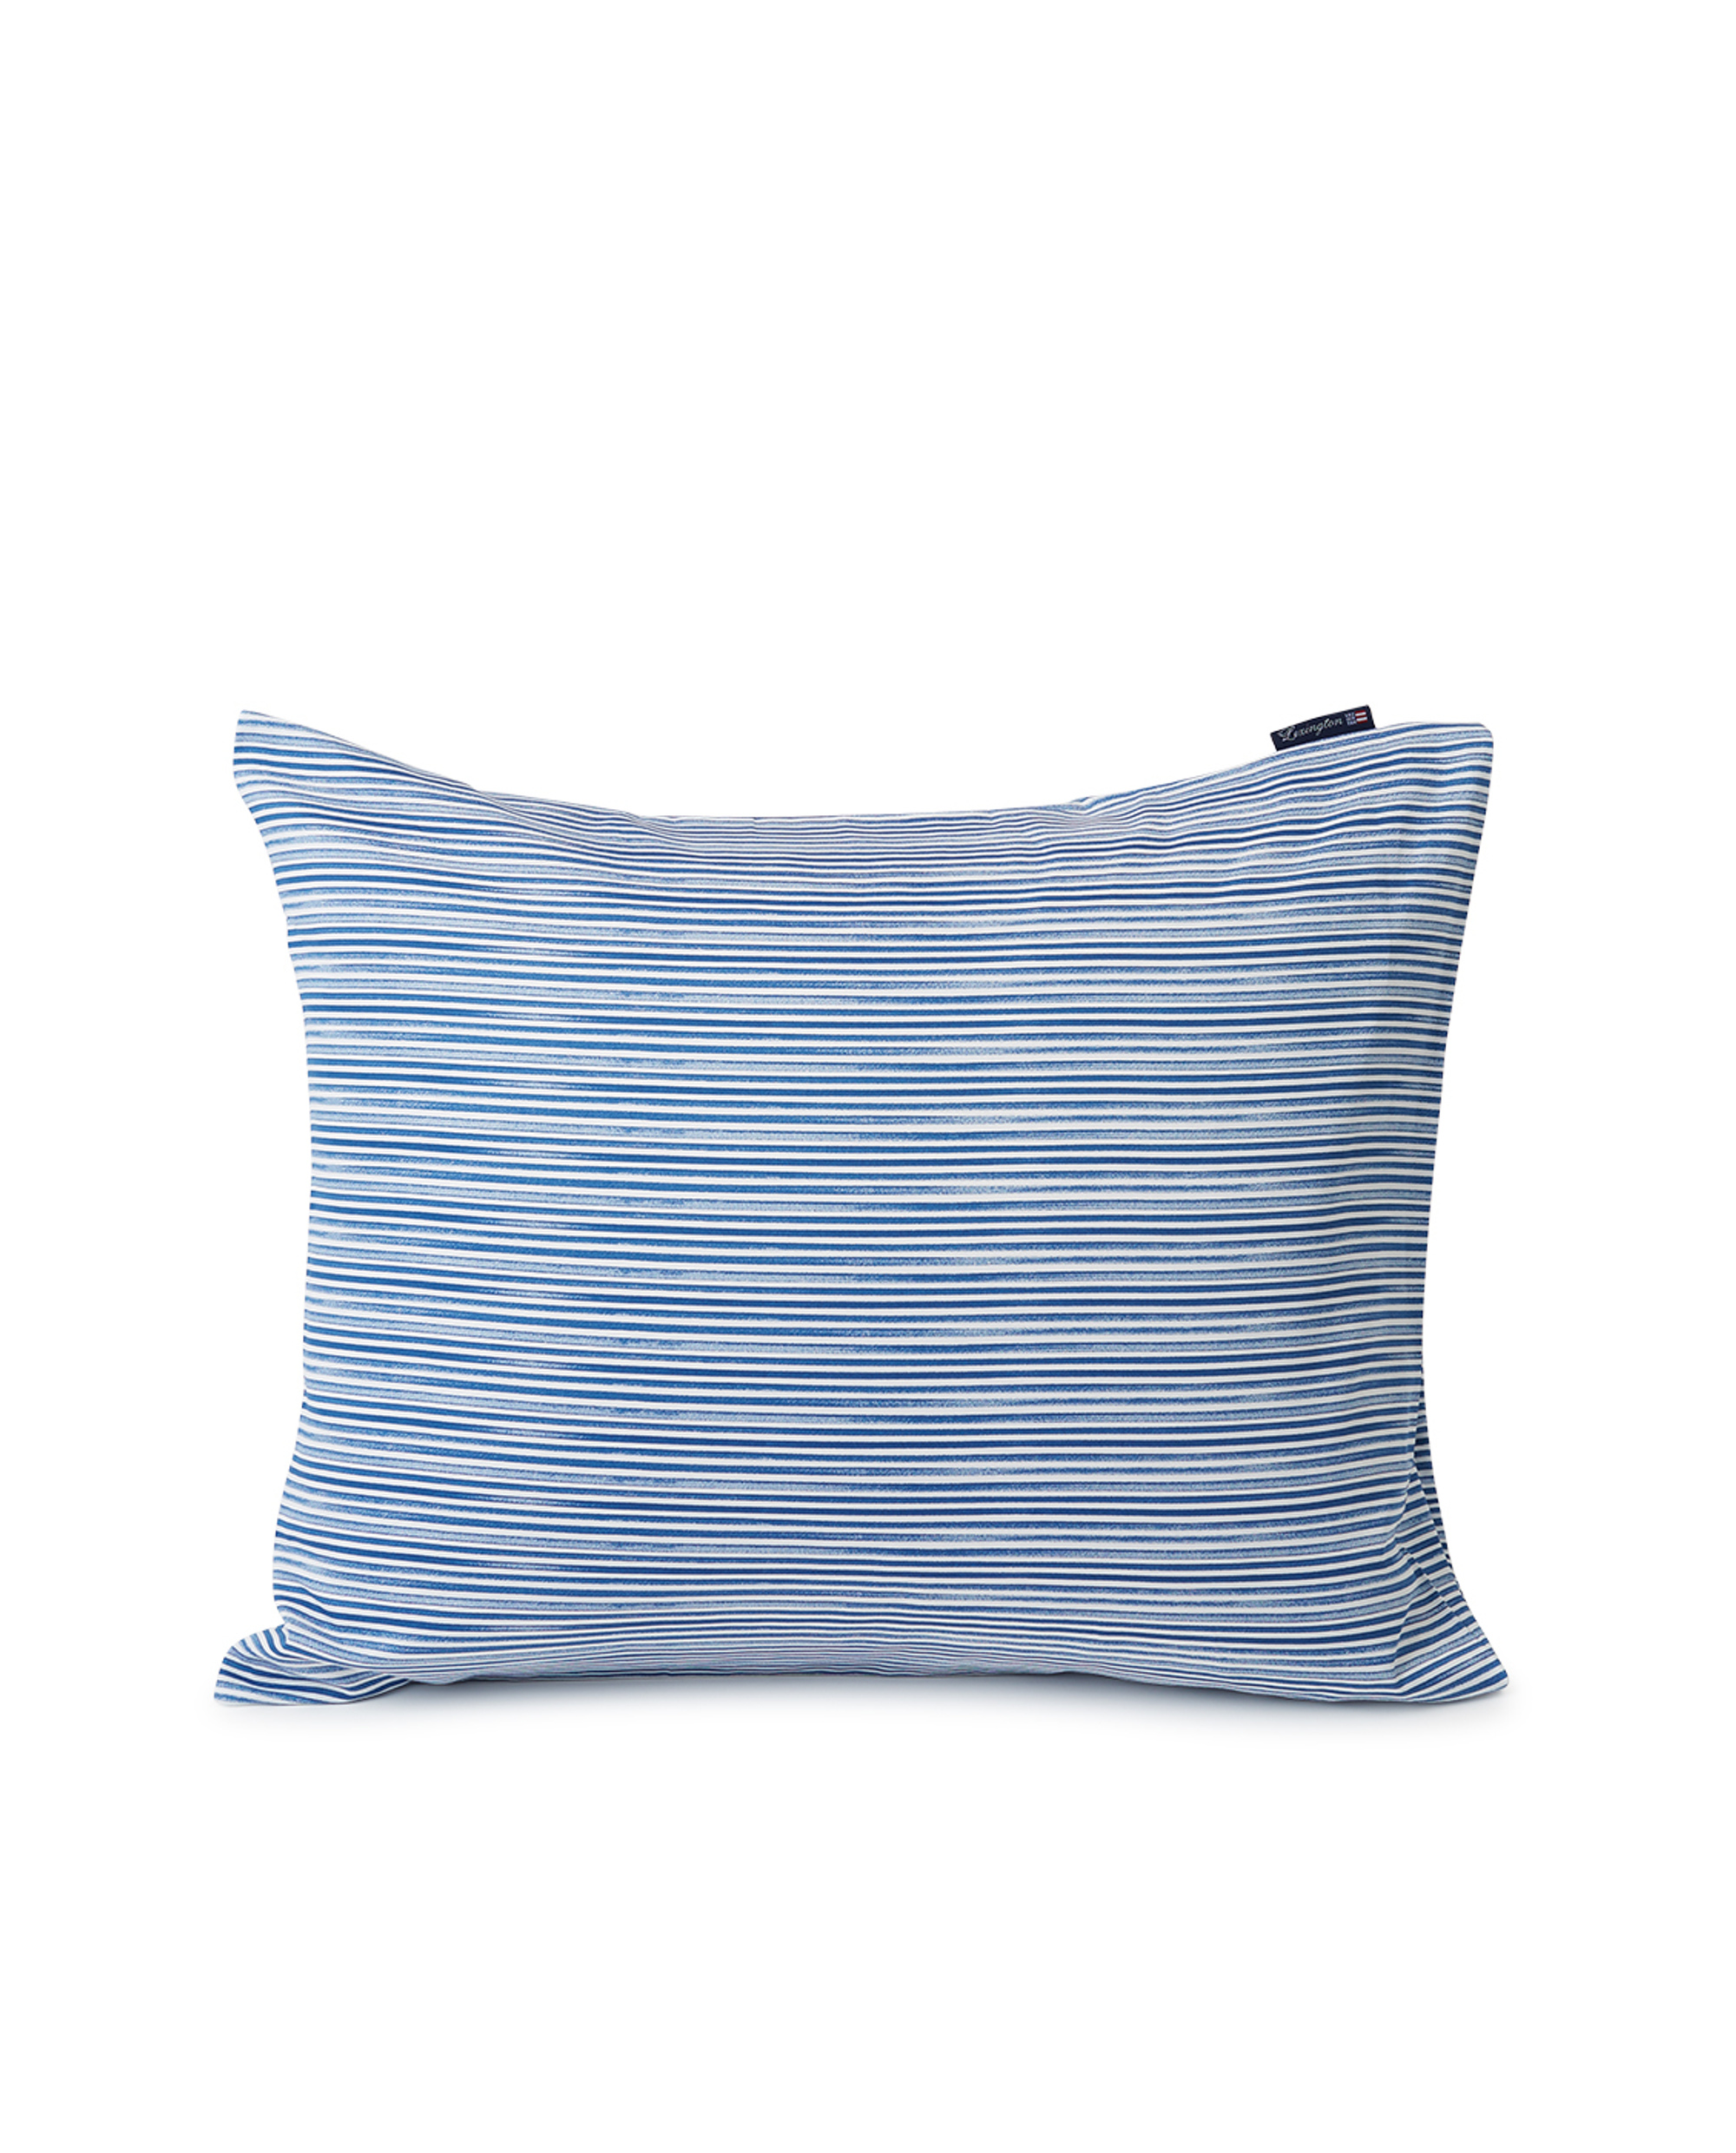 Blue Striped Organic Cotton Sateen Pillowcase